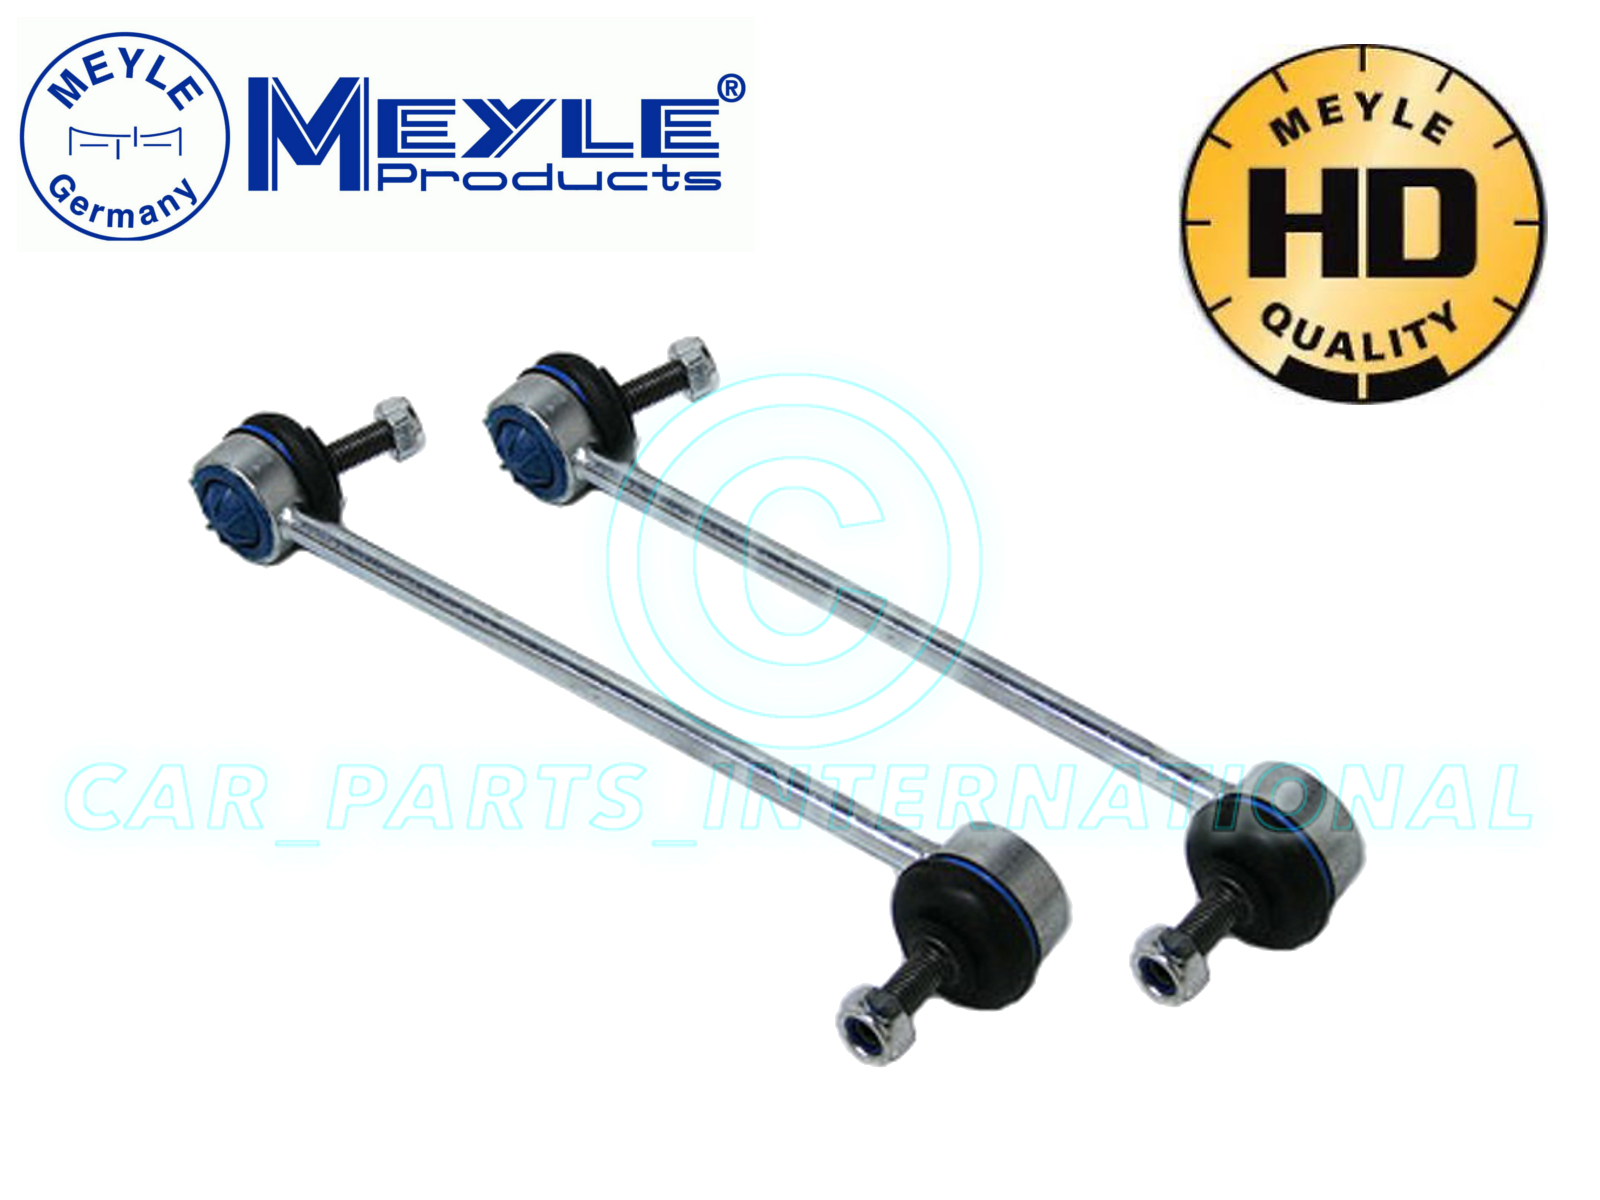 MEYLE HD for BMW E46 Ci Coupe /& Convertible 320 328 330 FRONT DROP LINK RODS x 2